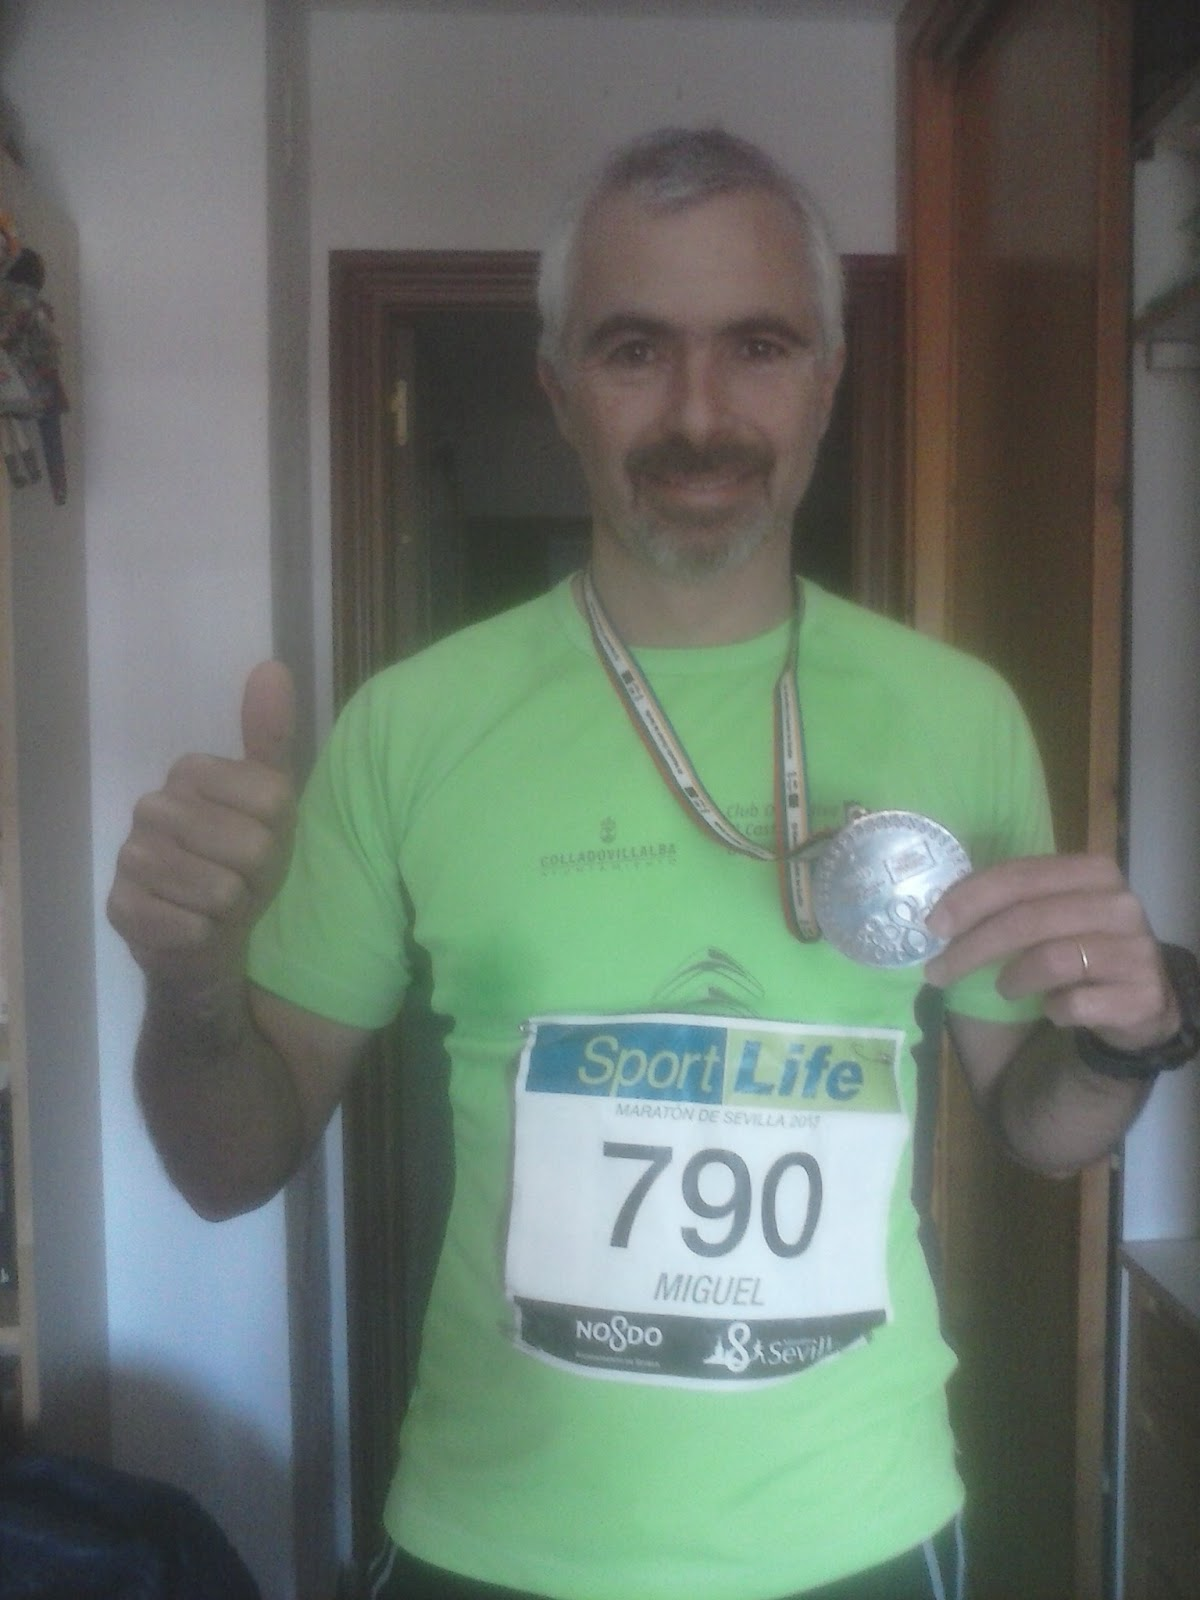 Con la medalla de Finisher